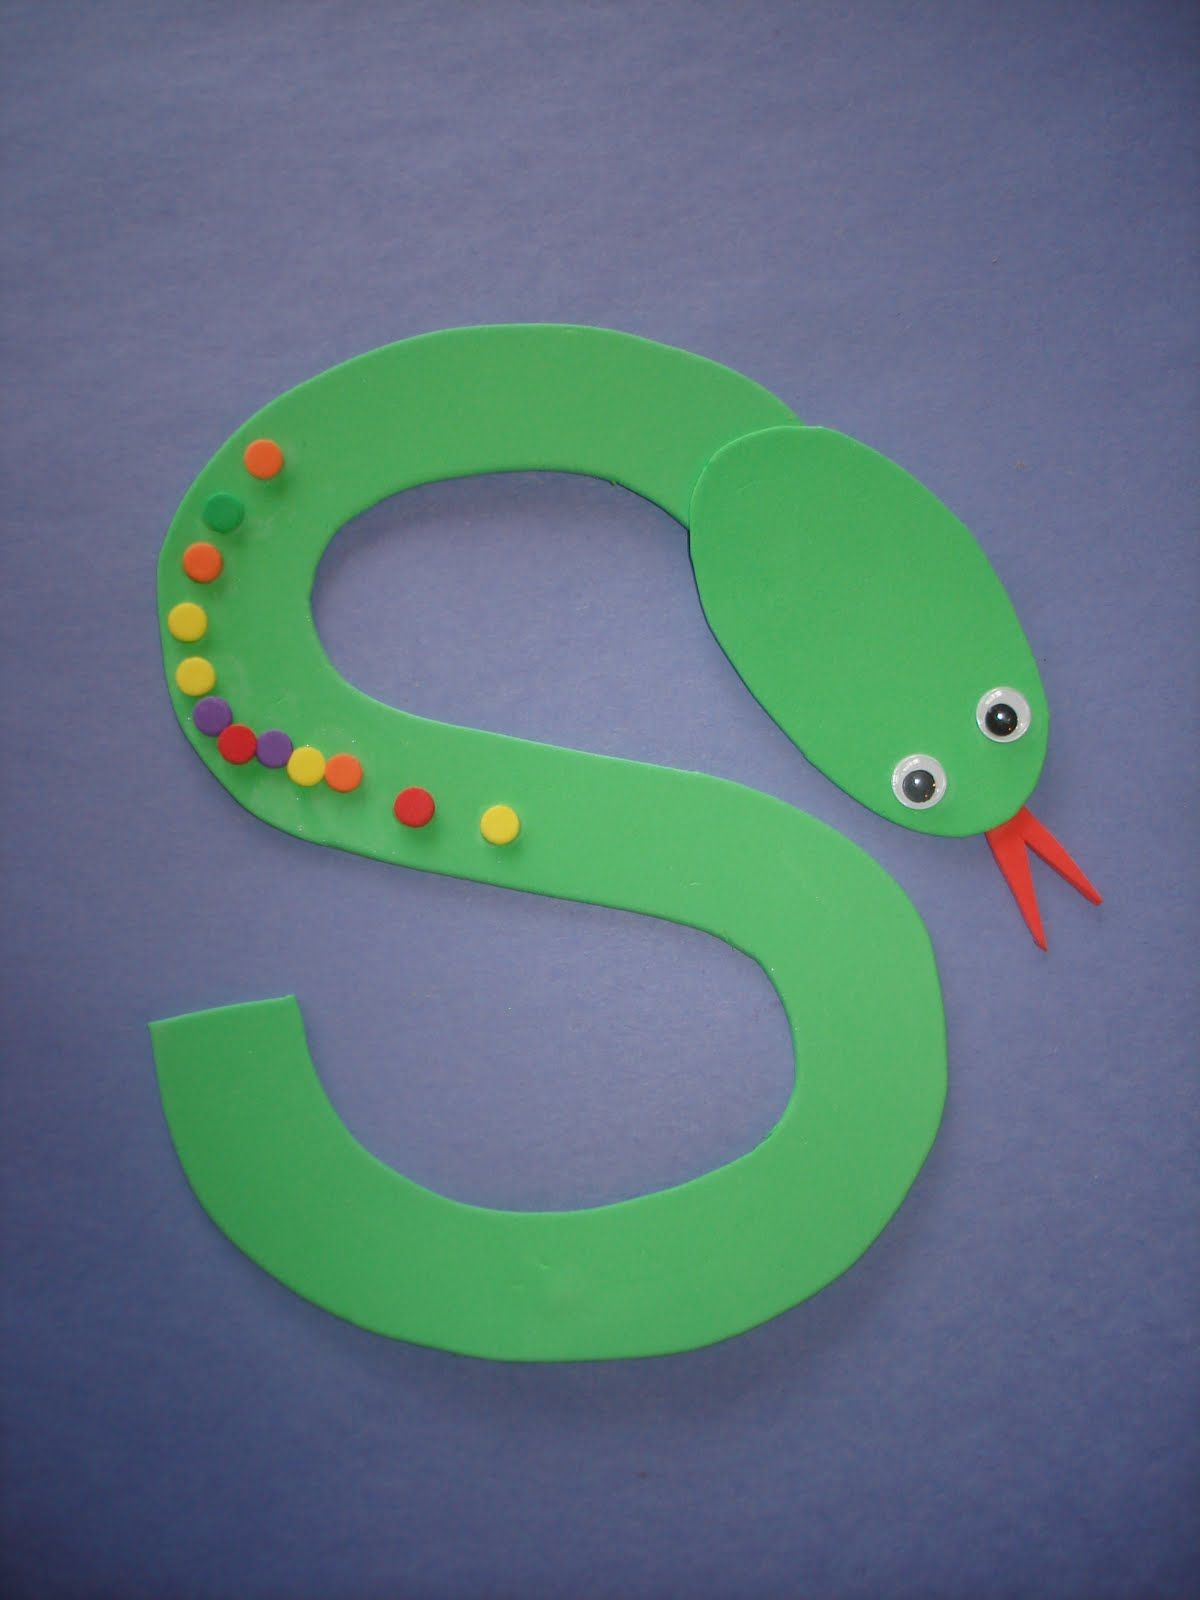 Letter s arts and crafts for preschoolers - Crafts For Preschoolers Letter S Snake Use Fruit Loops Or Colored Dot Stickers